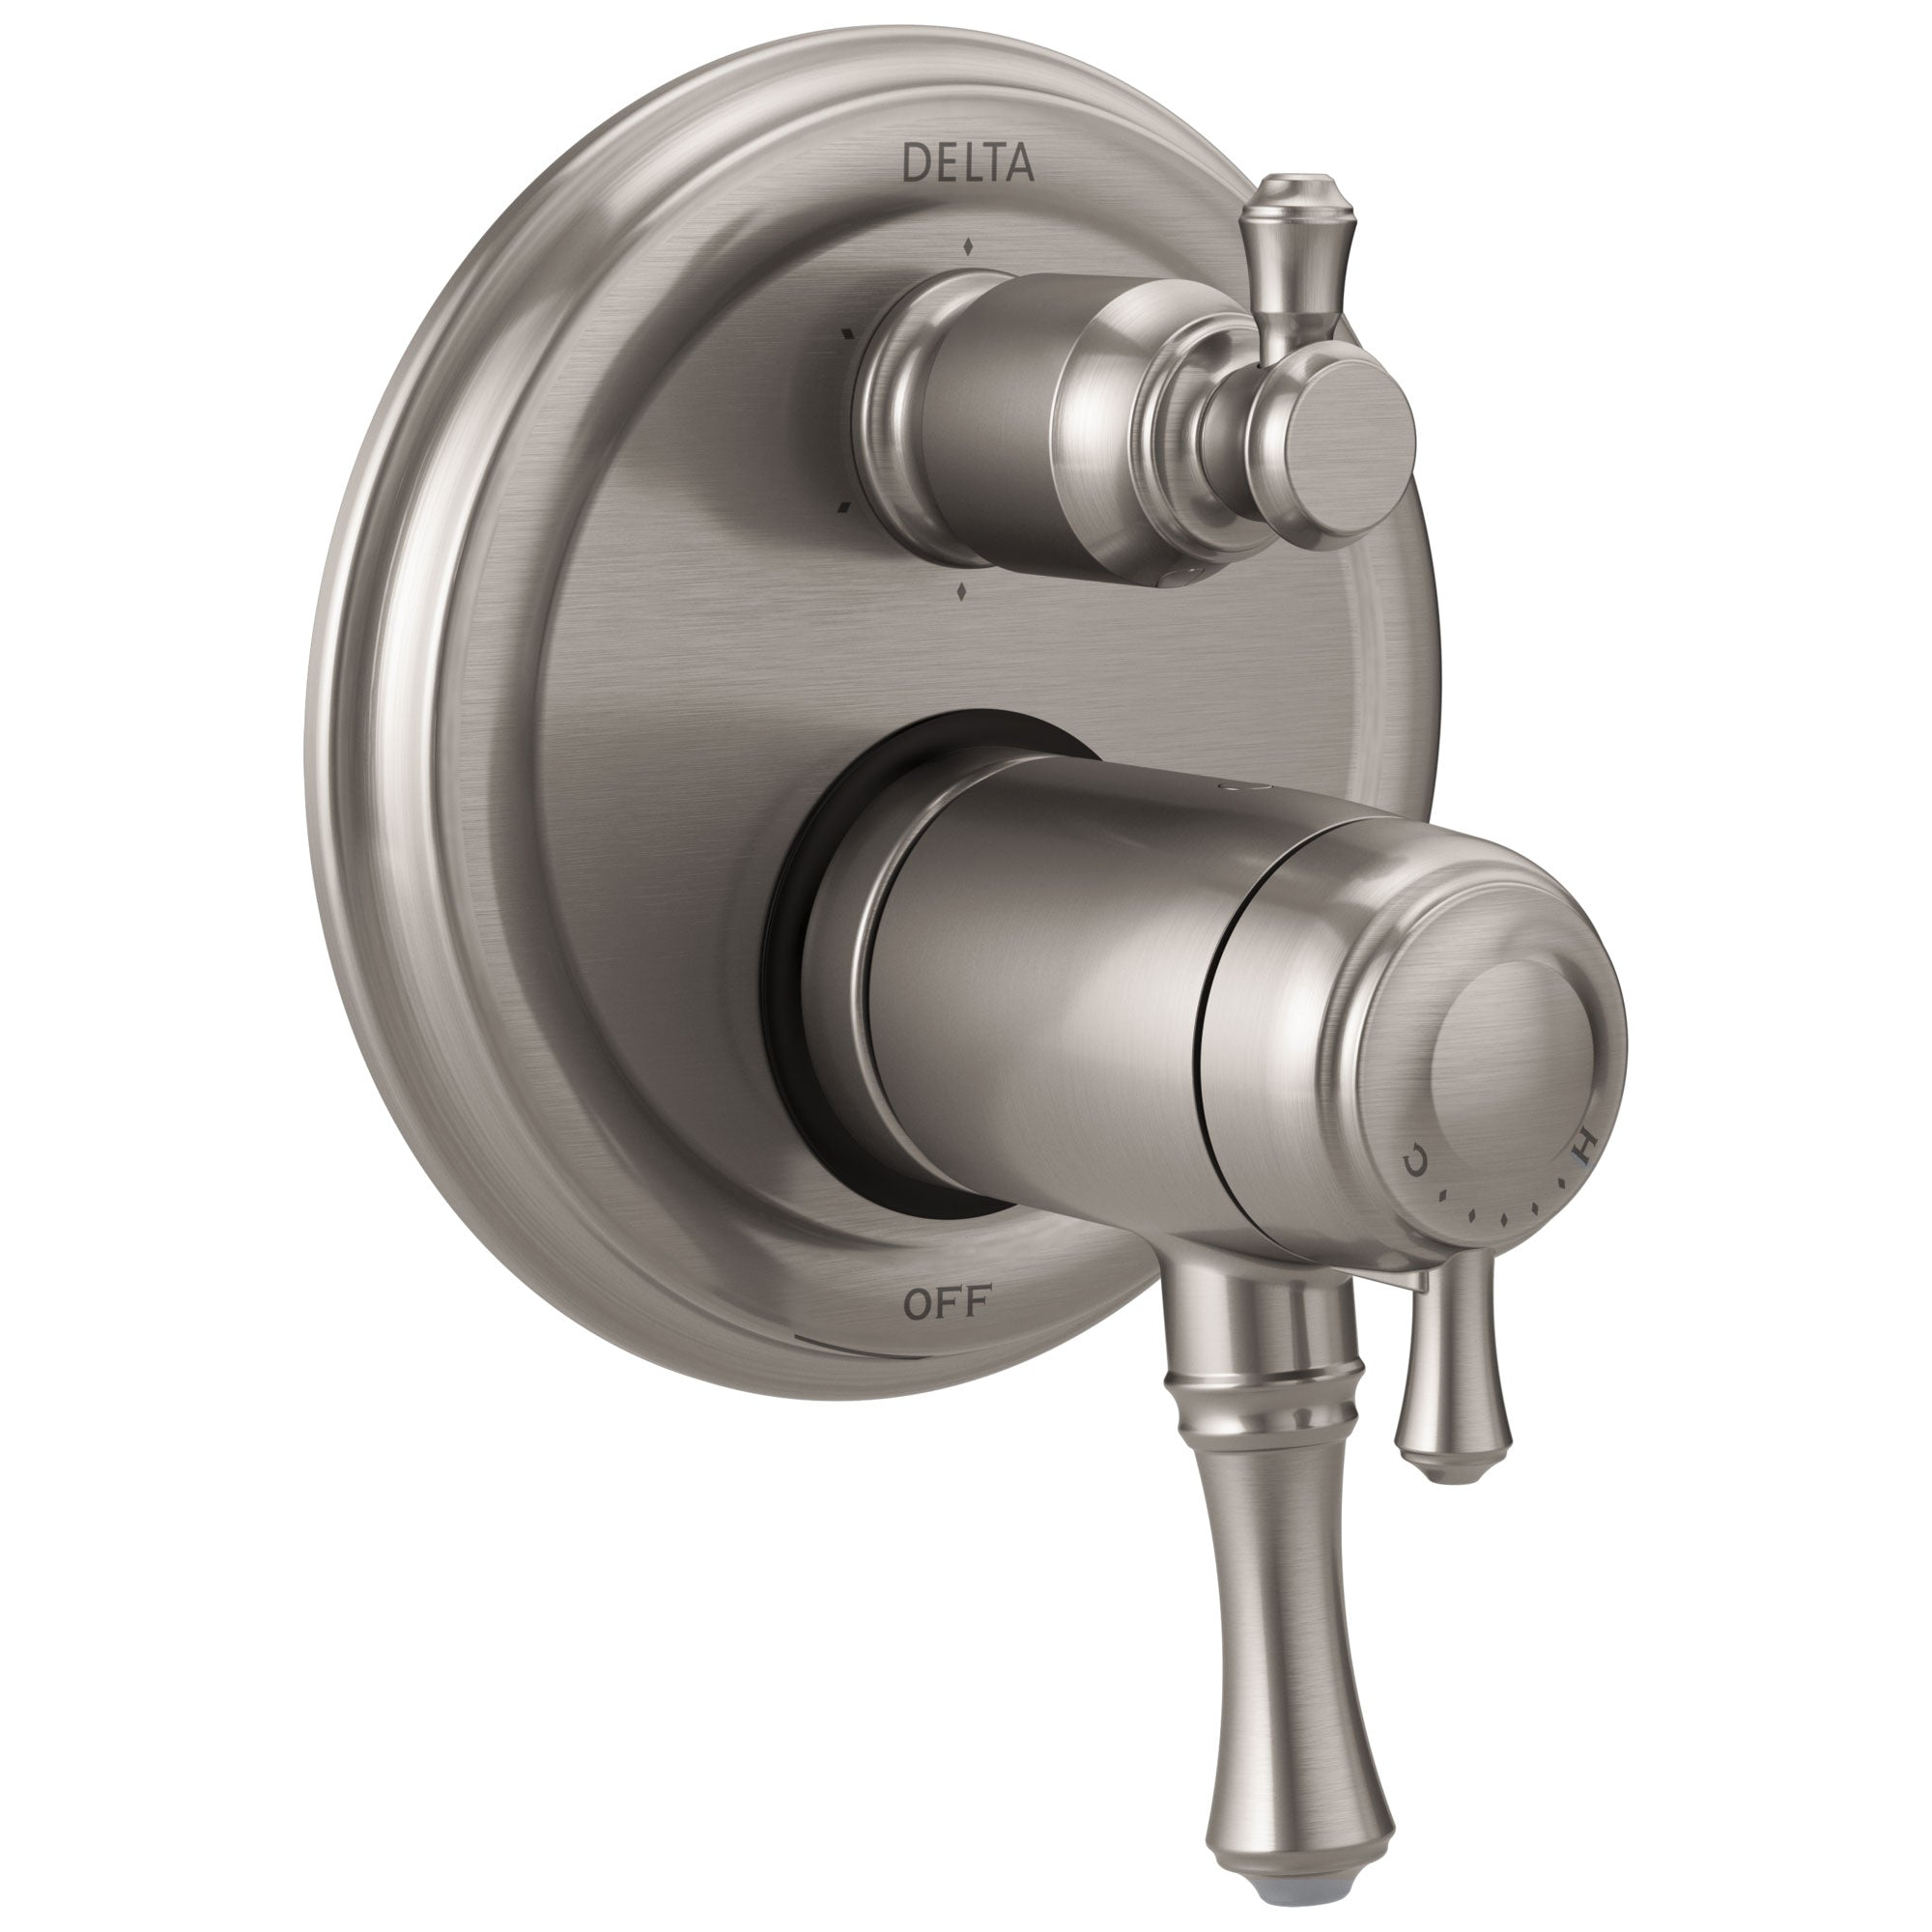 Delta Cassidy Collection Stainless Steel Finish Thermostatic Shower Faucet Control with 6-Setting Integrated Diverter Trim (Requires Valve) DT27T997SS